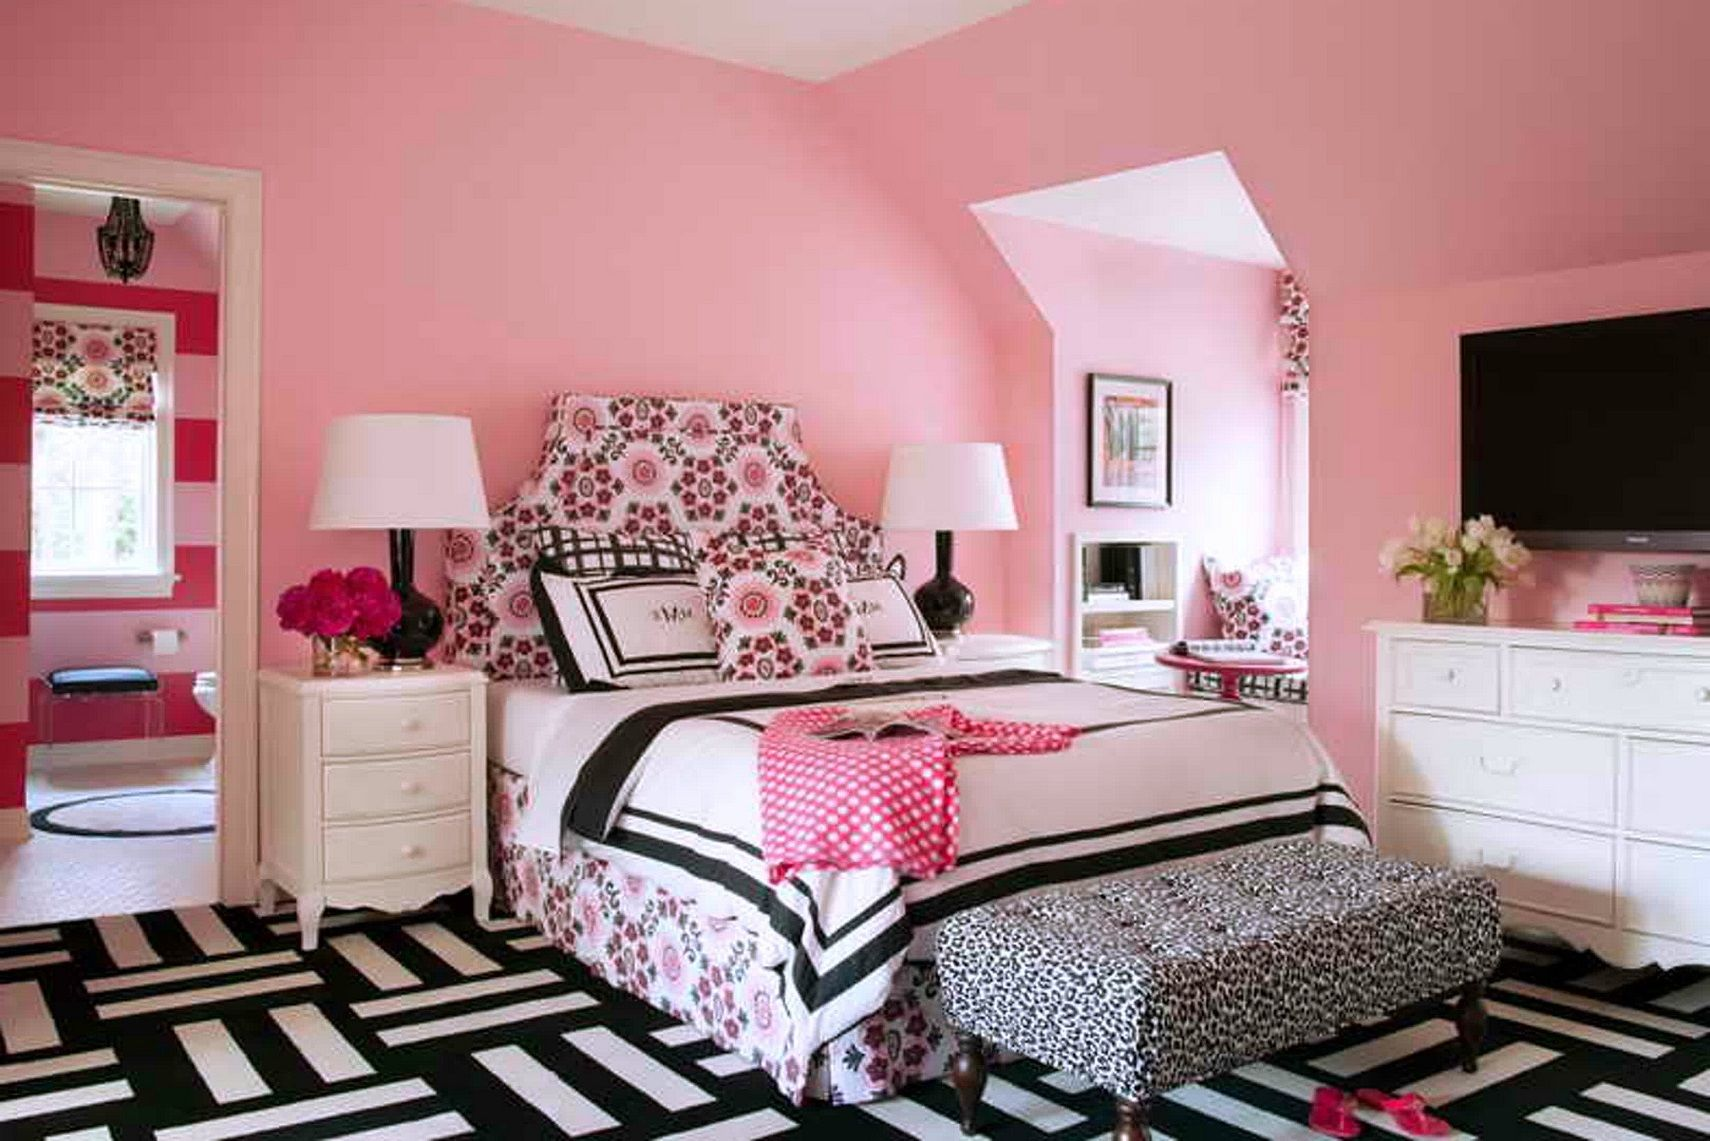 Small Bedroom For Teenage Girls Teenage Girl Room Ideas To Show The Characteristic Of The Owner